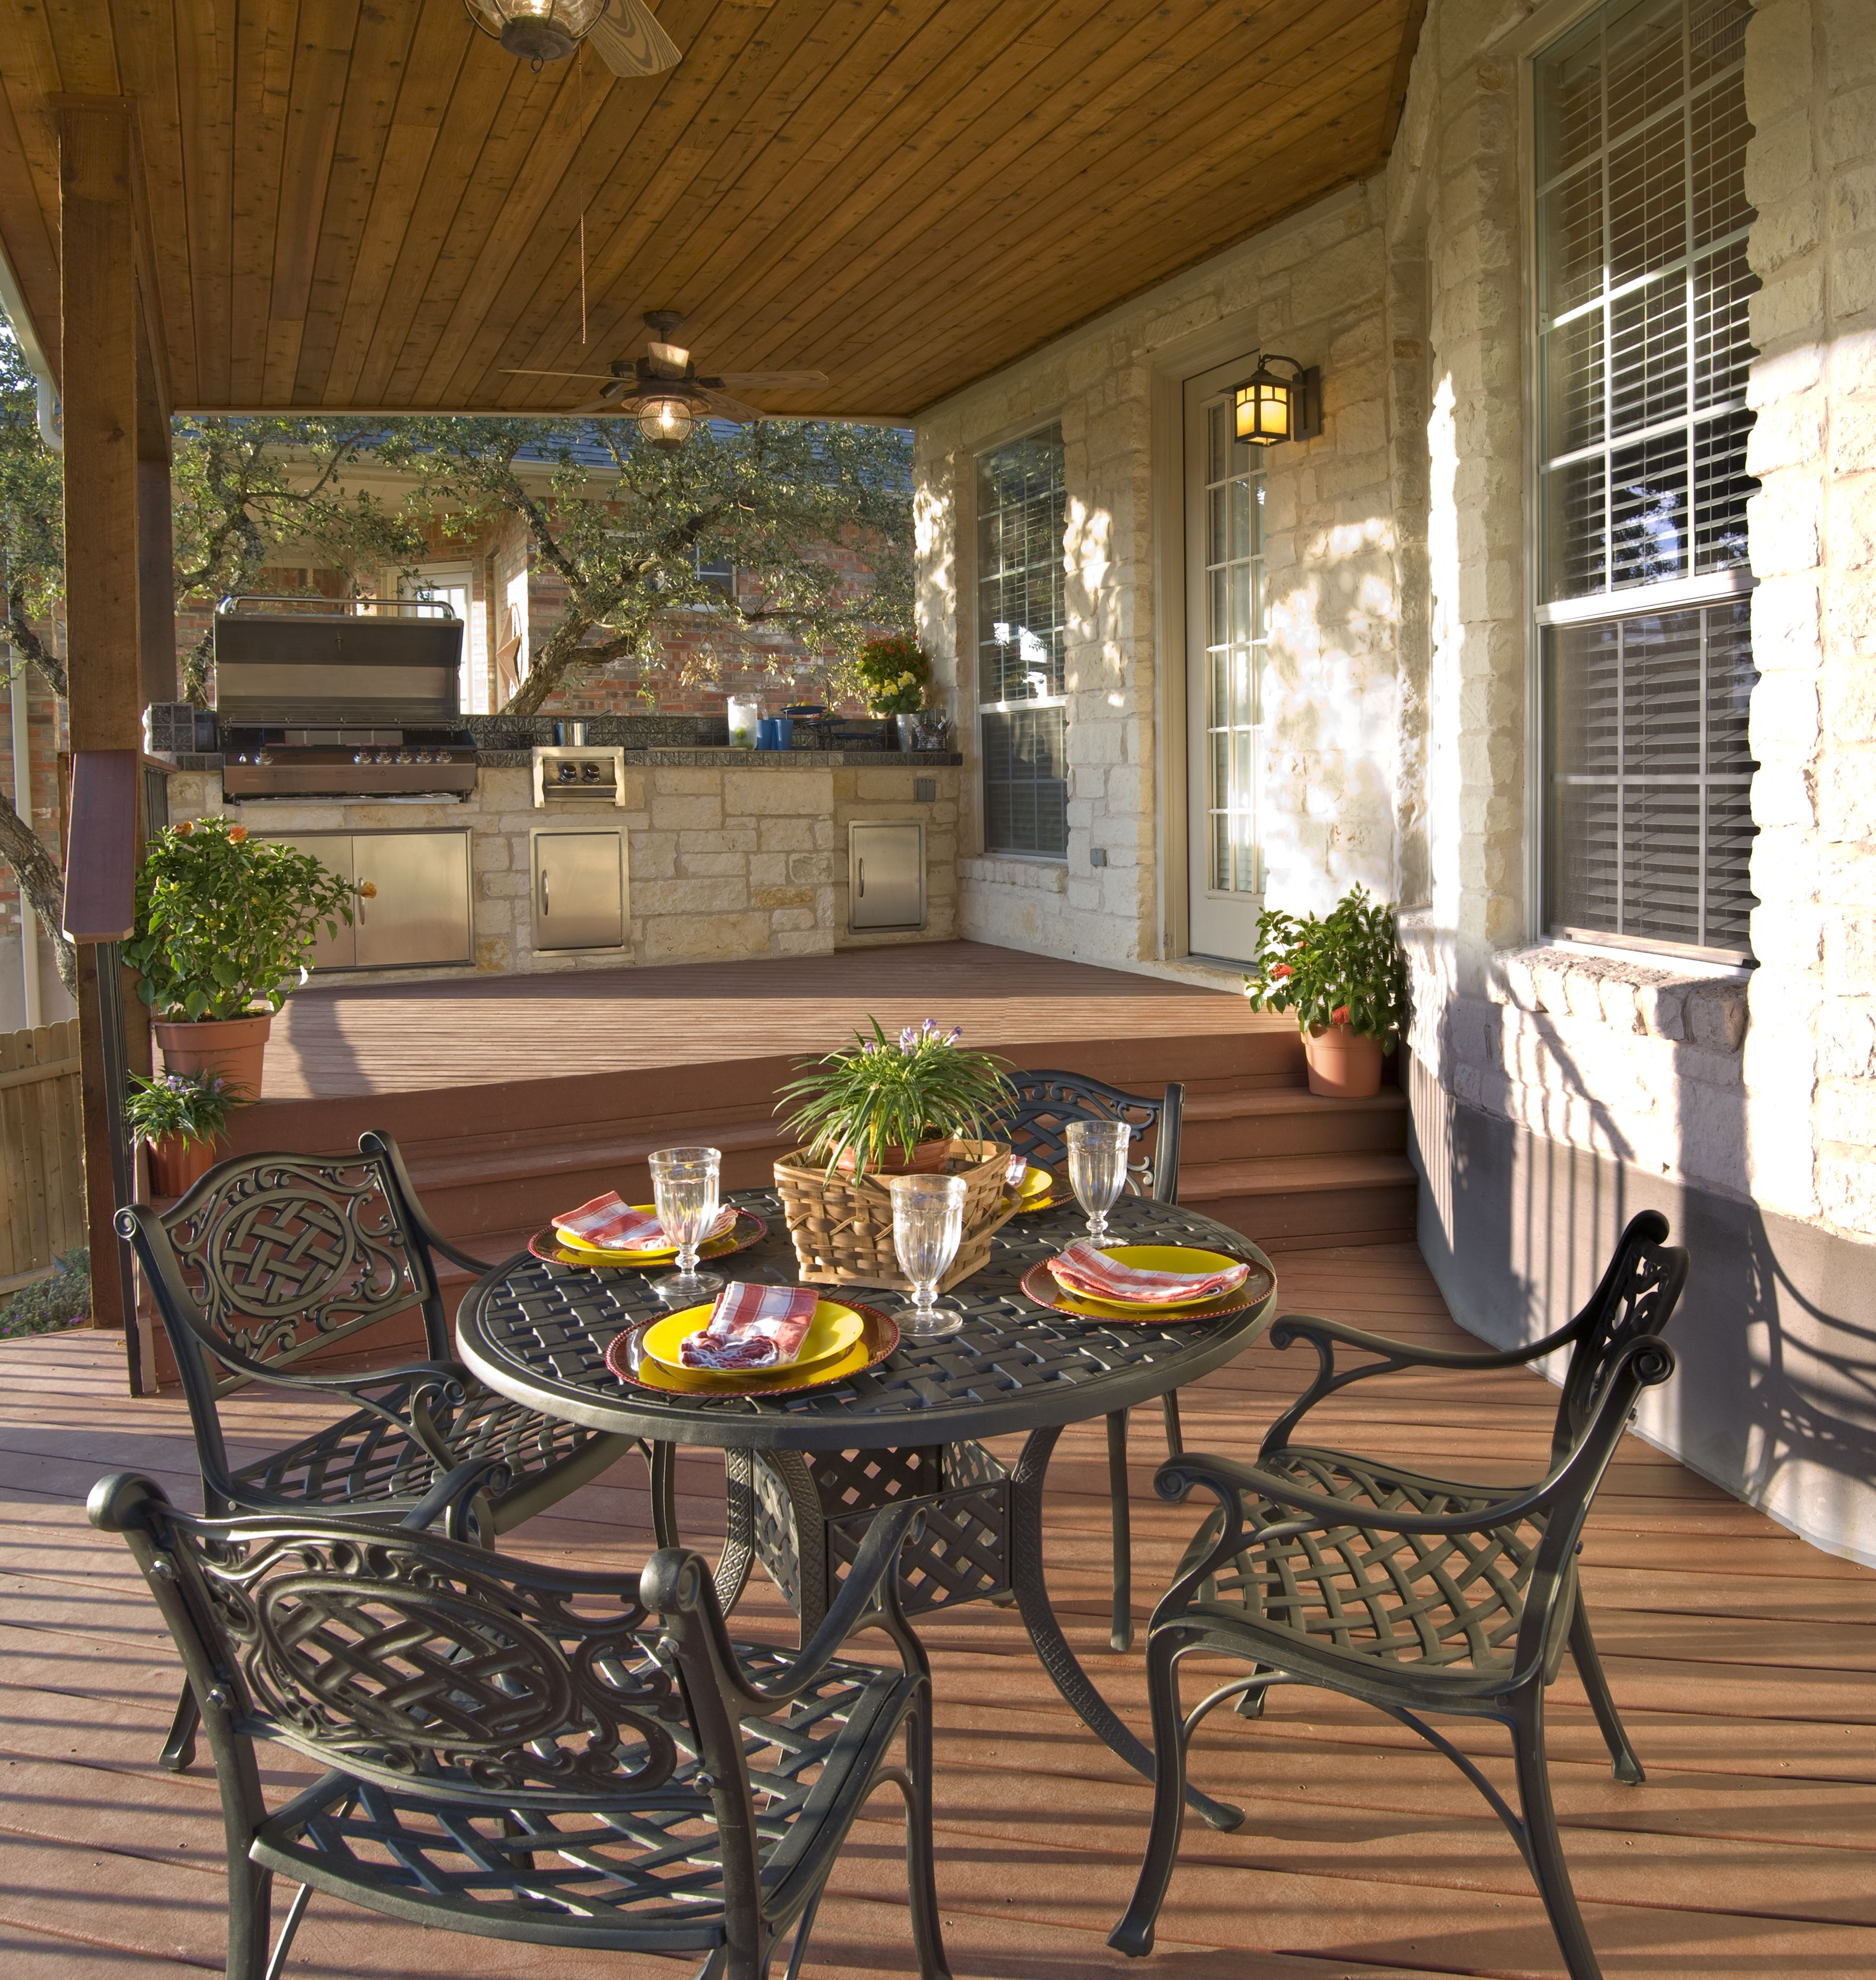 Outdoor Cooking Spaces Part - 41: A Two-step-change In Deck Levels Creates Two Separate Outdoor Spaces. One  For Cooking And One For Dining.